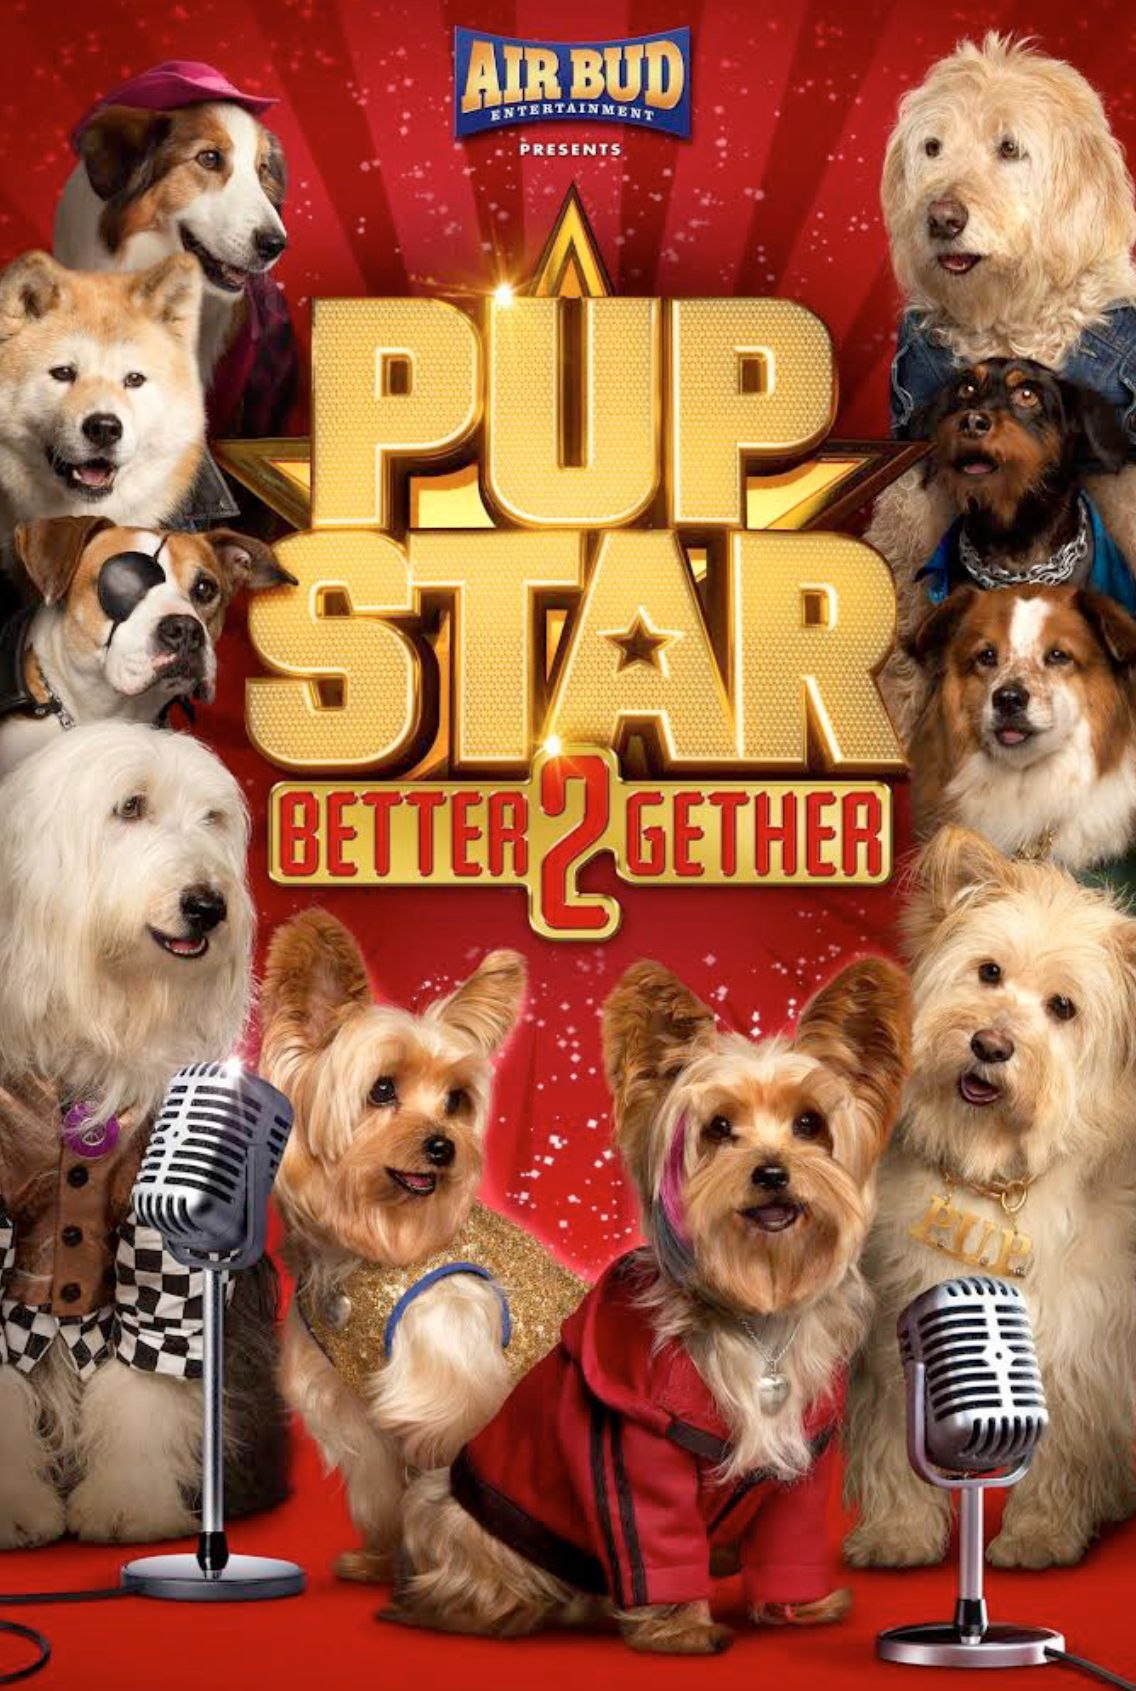 World premiere of 'Pup Star: Better 2gether' Debuts March 23